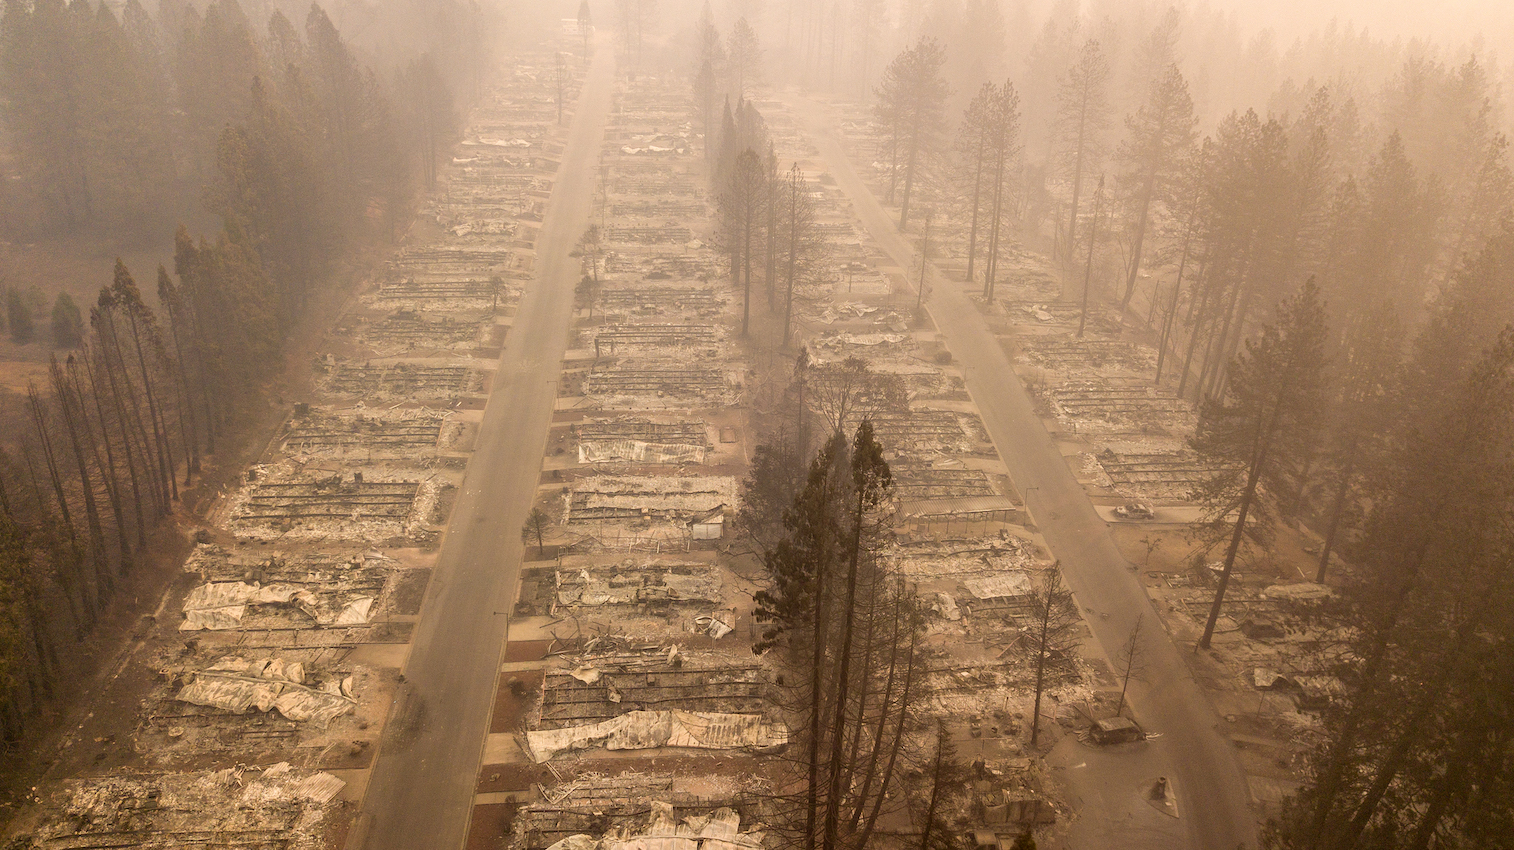 Josh Edelson,  In this aerial photo, one of many burned neighborhoods smolders in Paradise, California on November 15, 2018. The Camp fire claimed the lives of 88 people and destroyed more than 180, 804 buildings in the deadliest wildfire in California's recorded history.  (JOSH EDELSON / AFP / Getty Images)